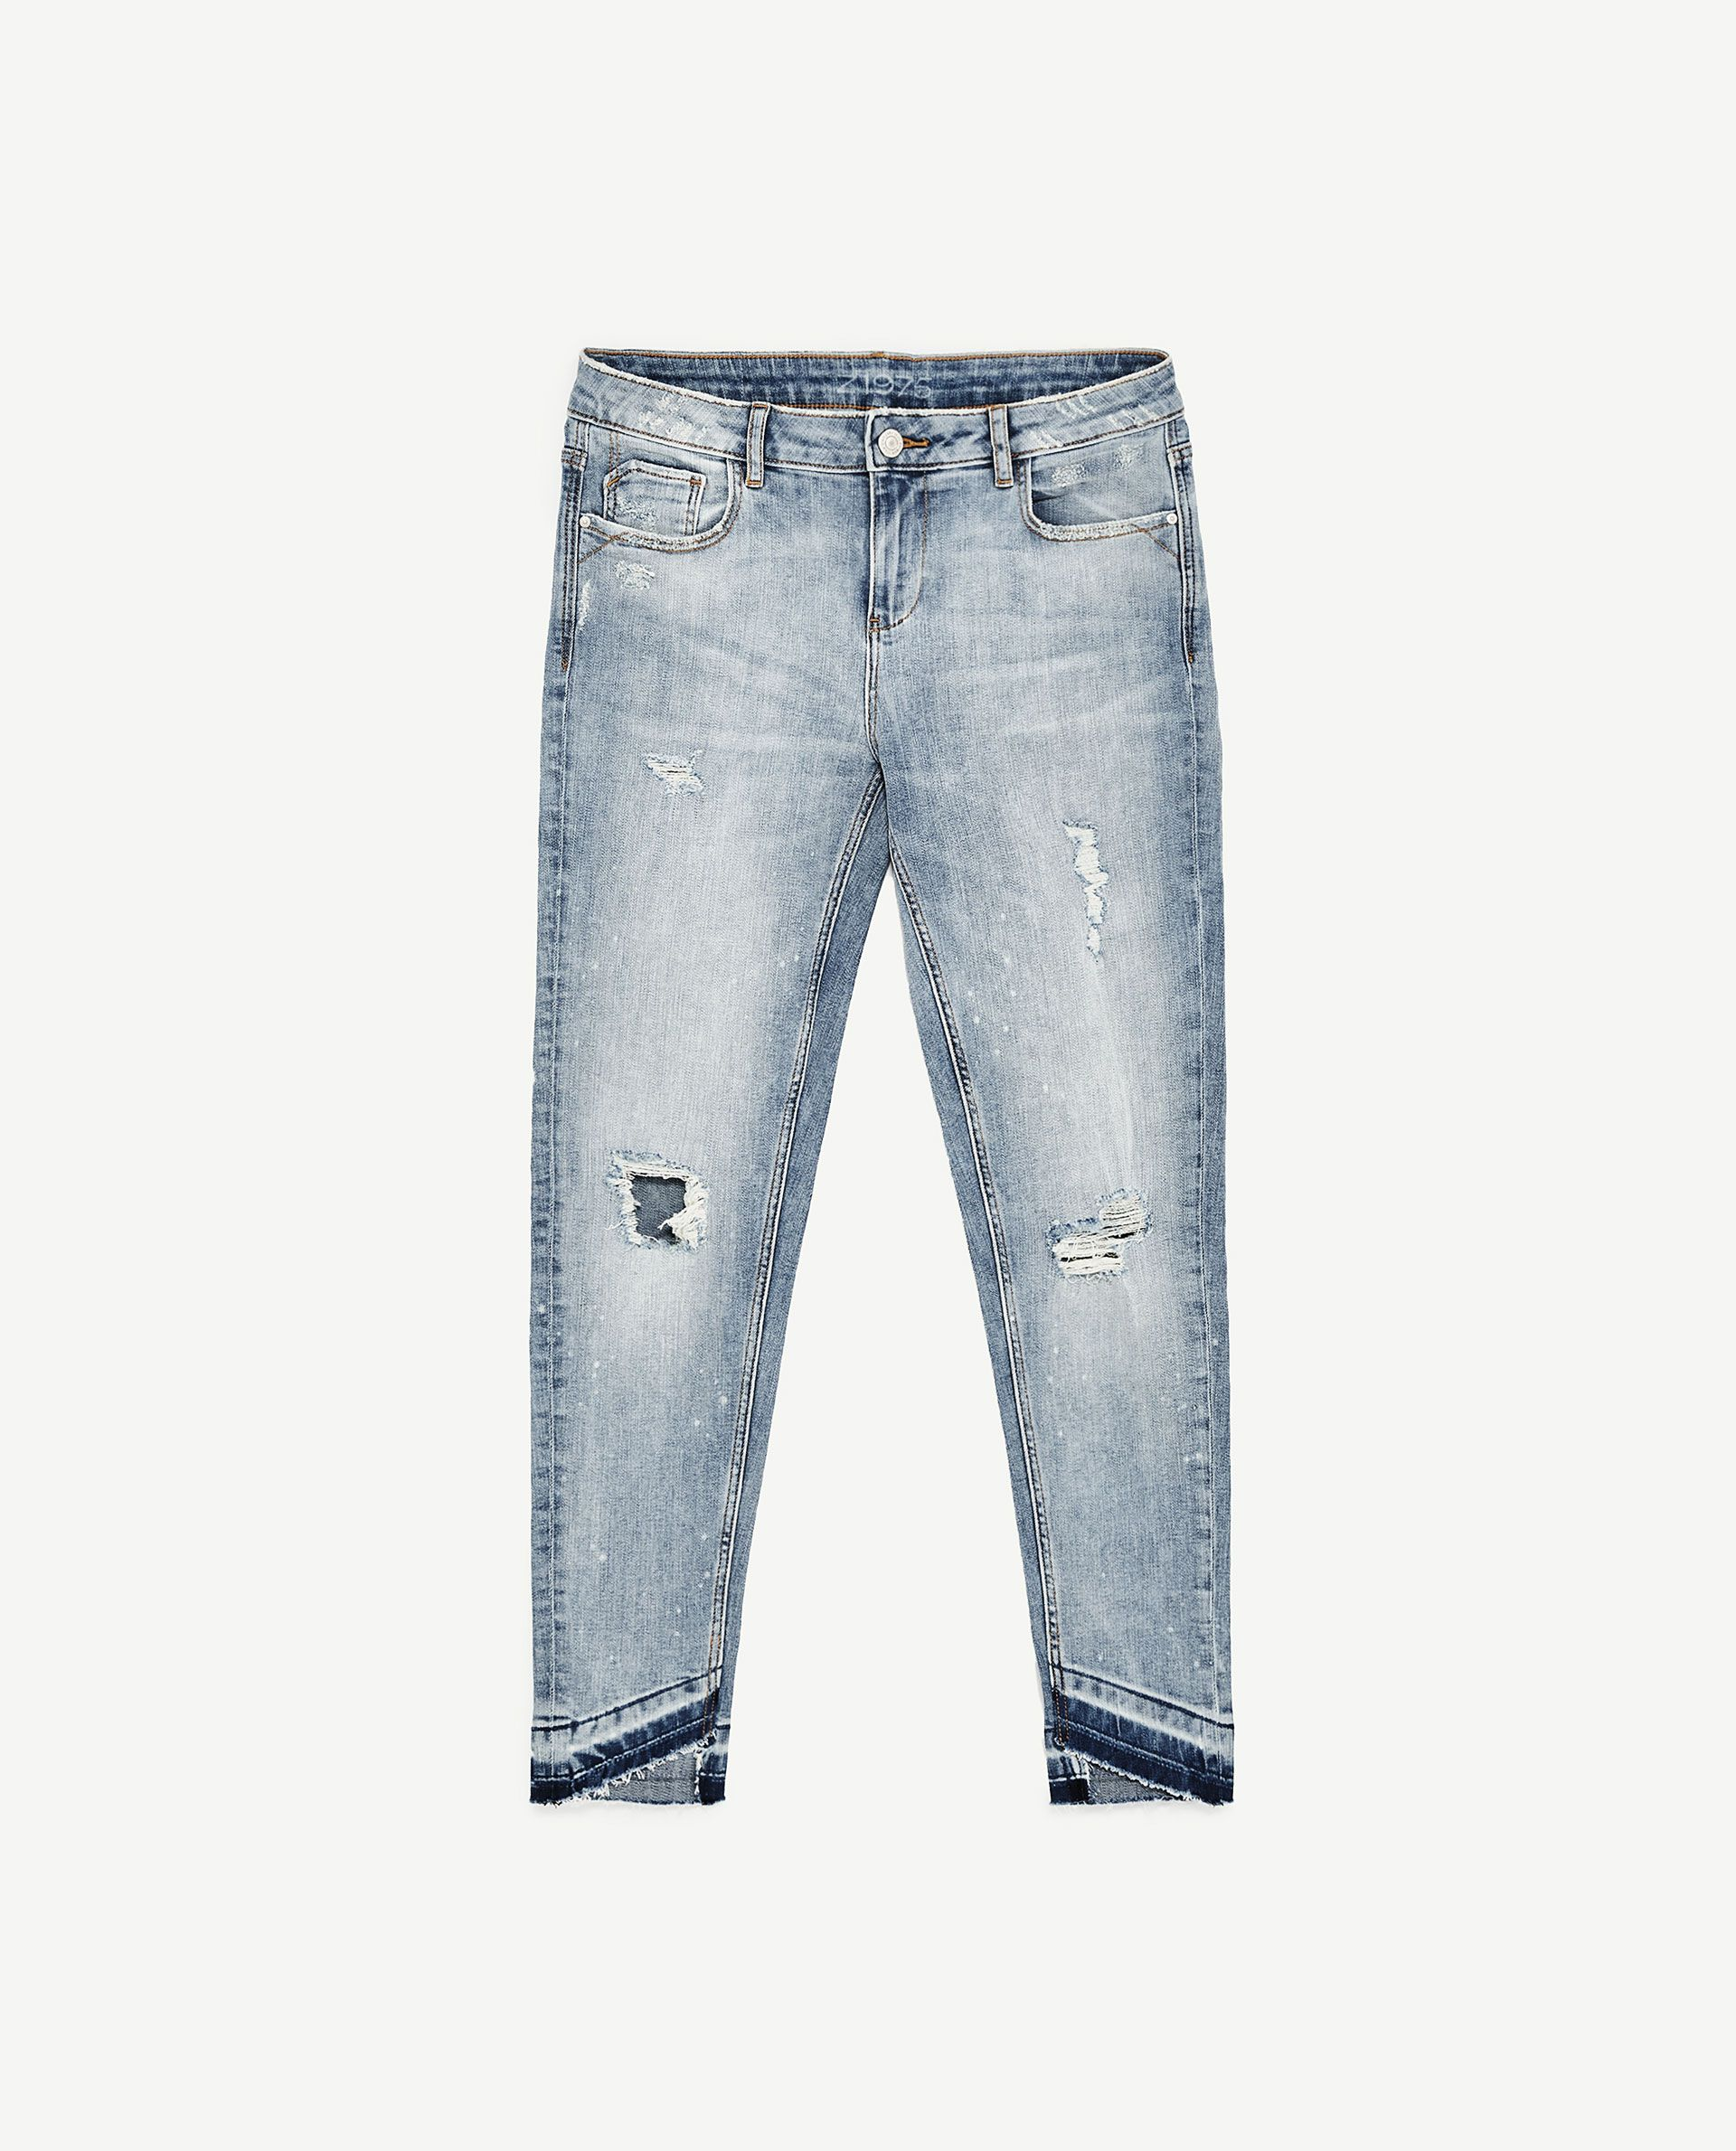 9fc47c4c MID-RISE JEANS WITH UNEVEN HEM from Zara | Development 18 | Jeans ...